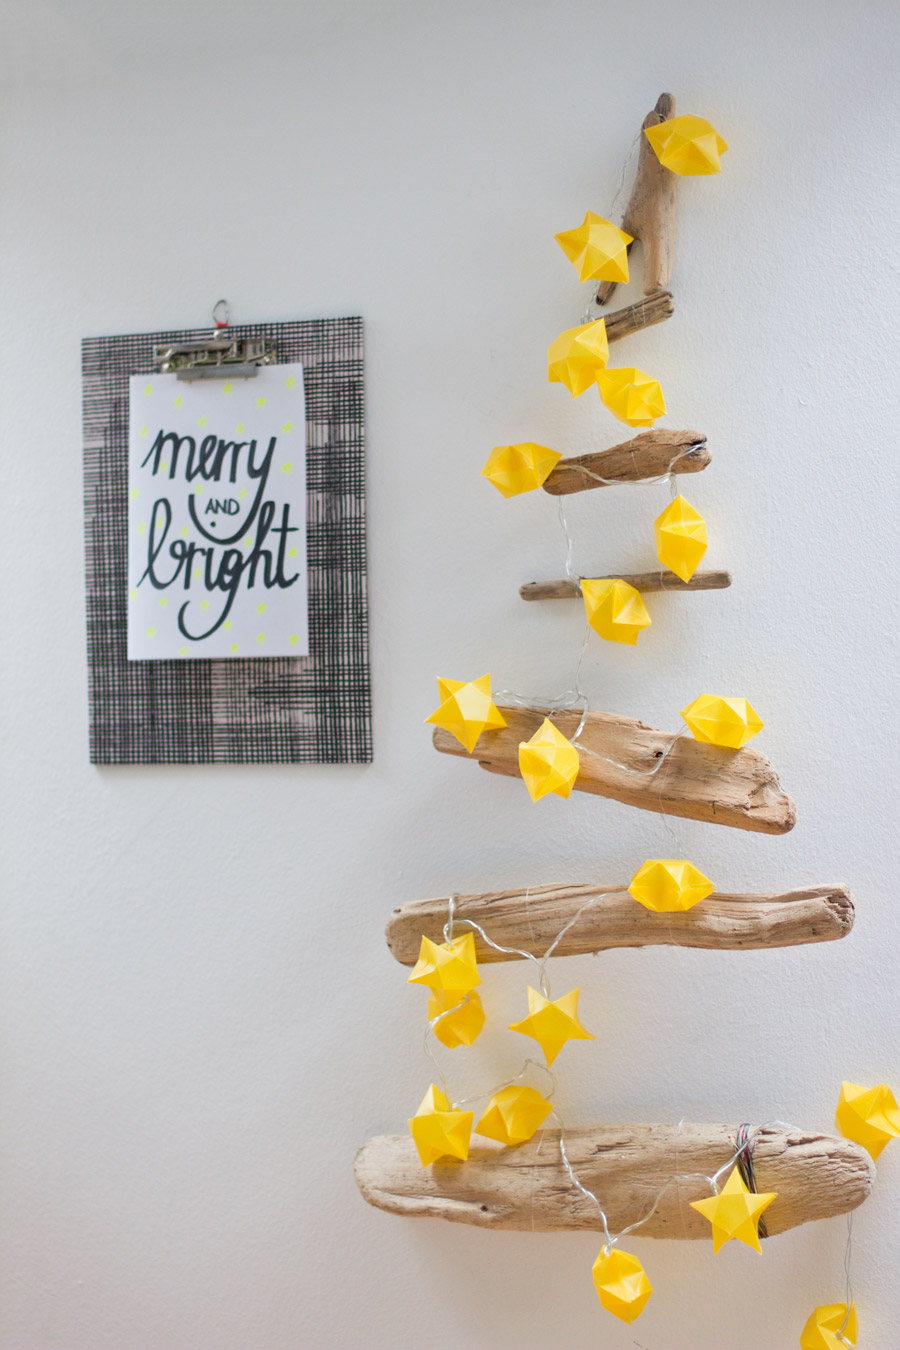 merry-and-bright-stars-led-light-garland